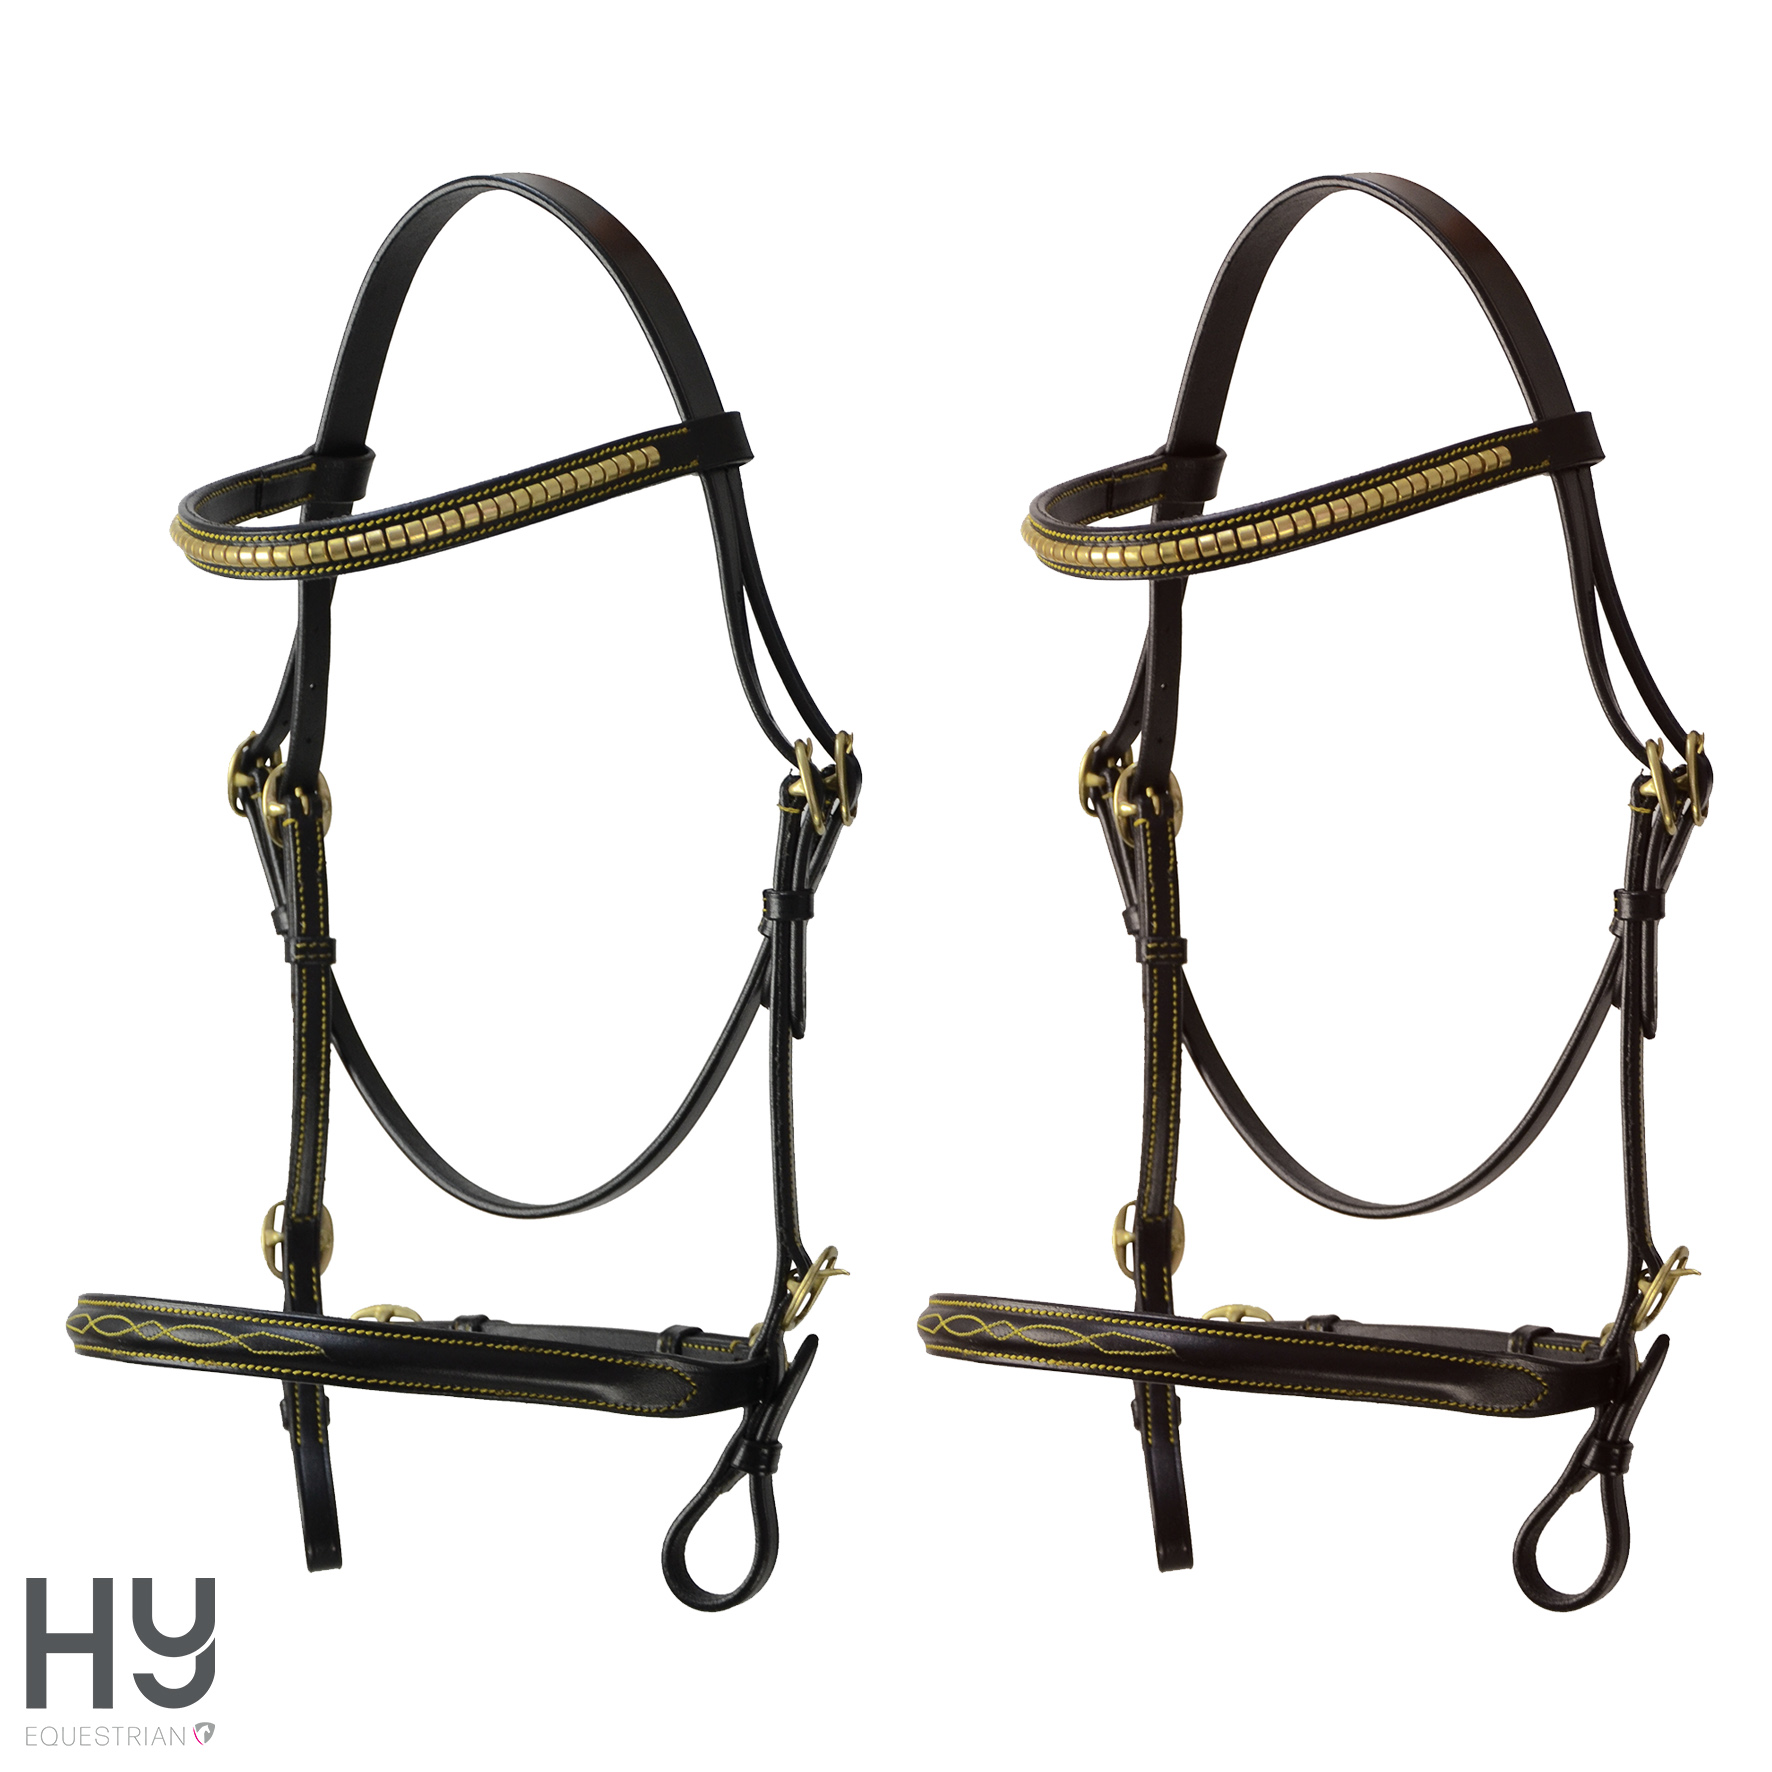 In-Hand Bridle by Hy Equestrian